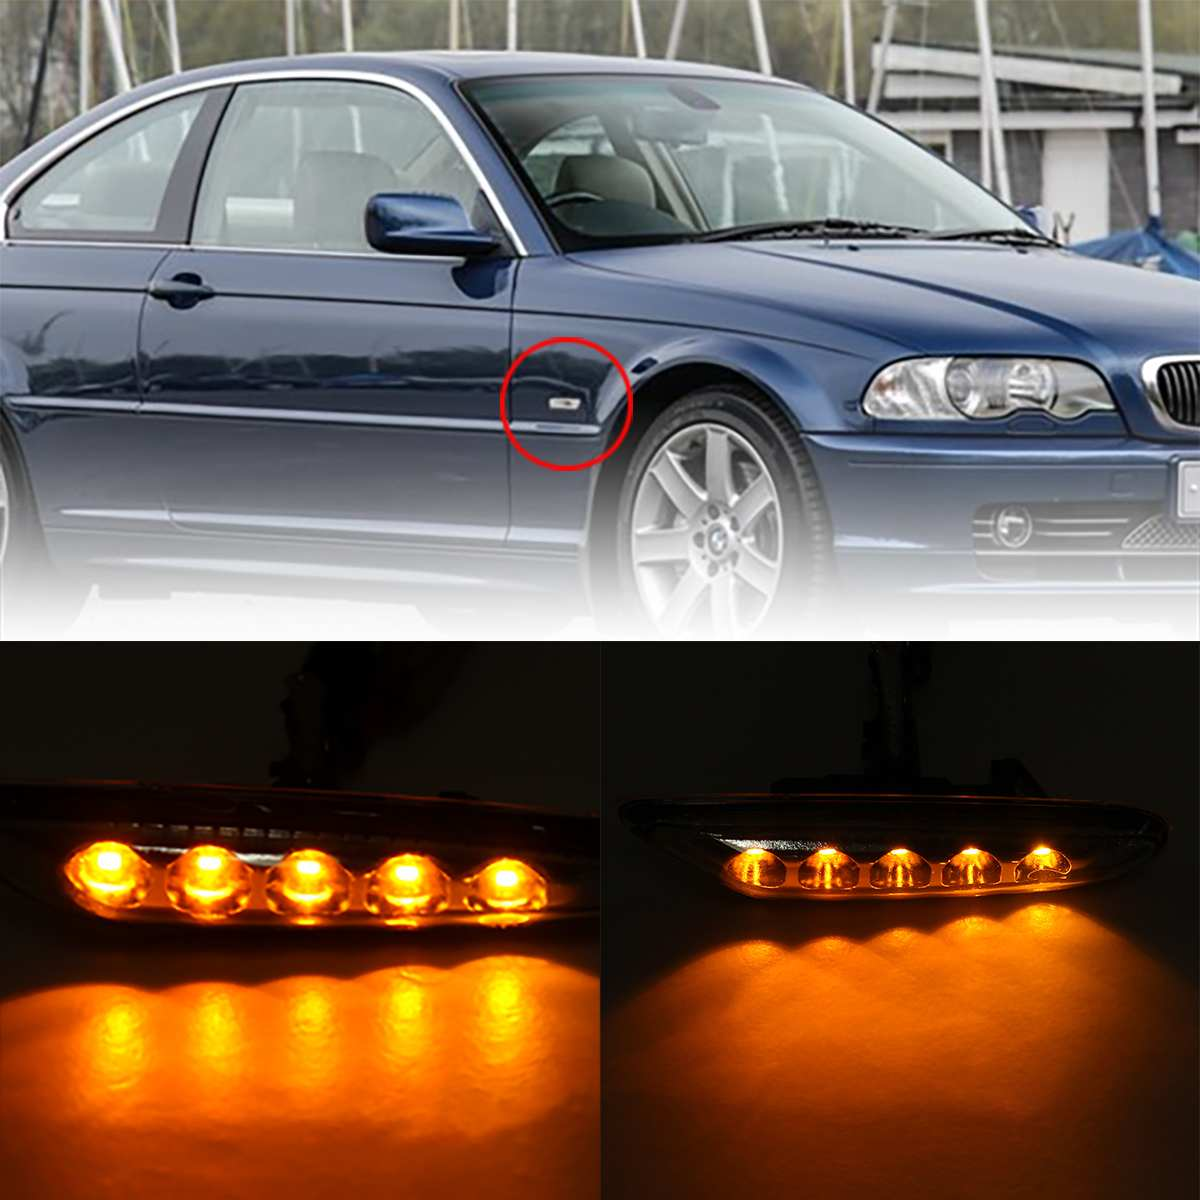 2pcs Turn Signal Light LED Side Marker Turn Indicator Blinker Lamp Signal Lamp for BMW E90 E91 E92 E46 E60 E81 E82 E83 E88 E87 image